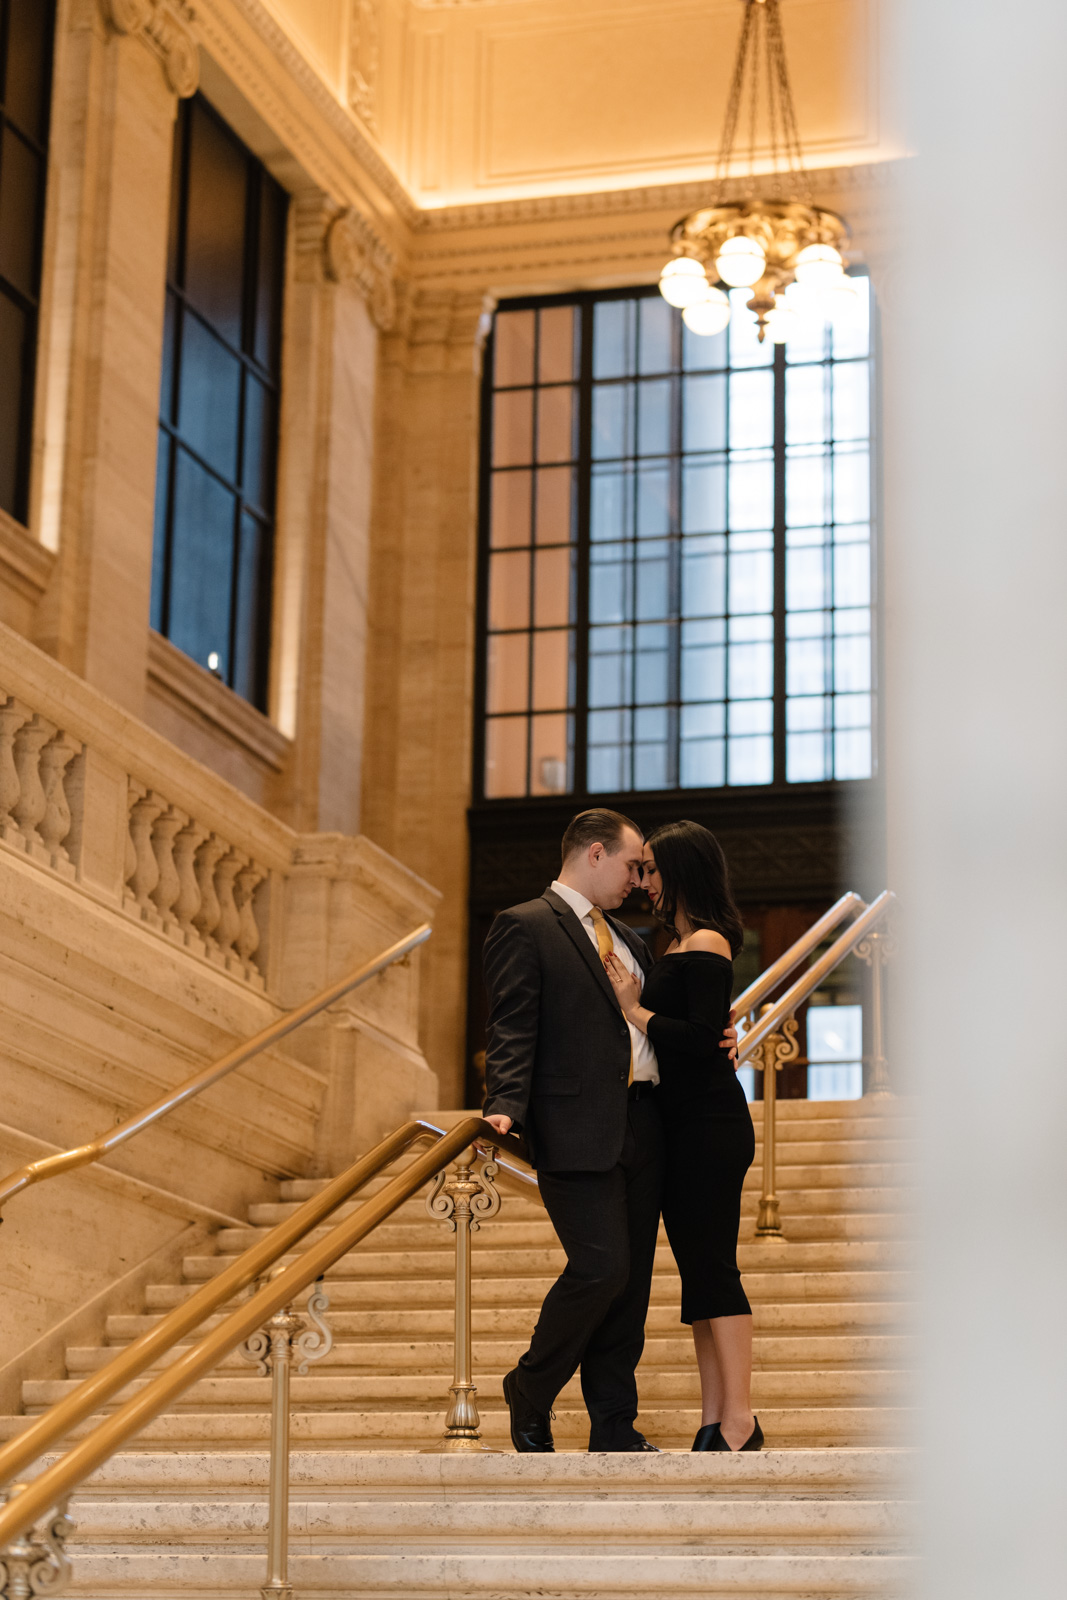 Couple cuddling on stairs at union station engagement